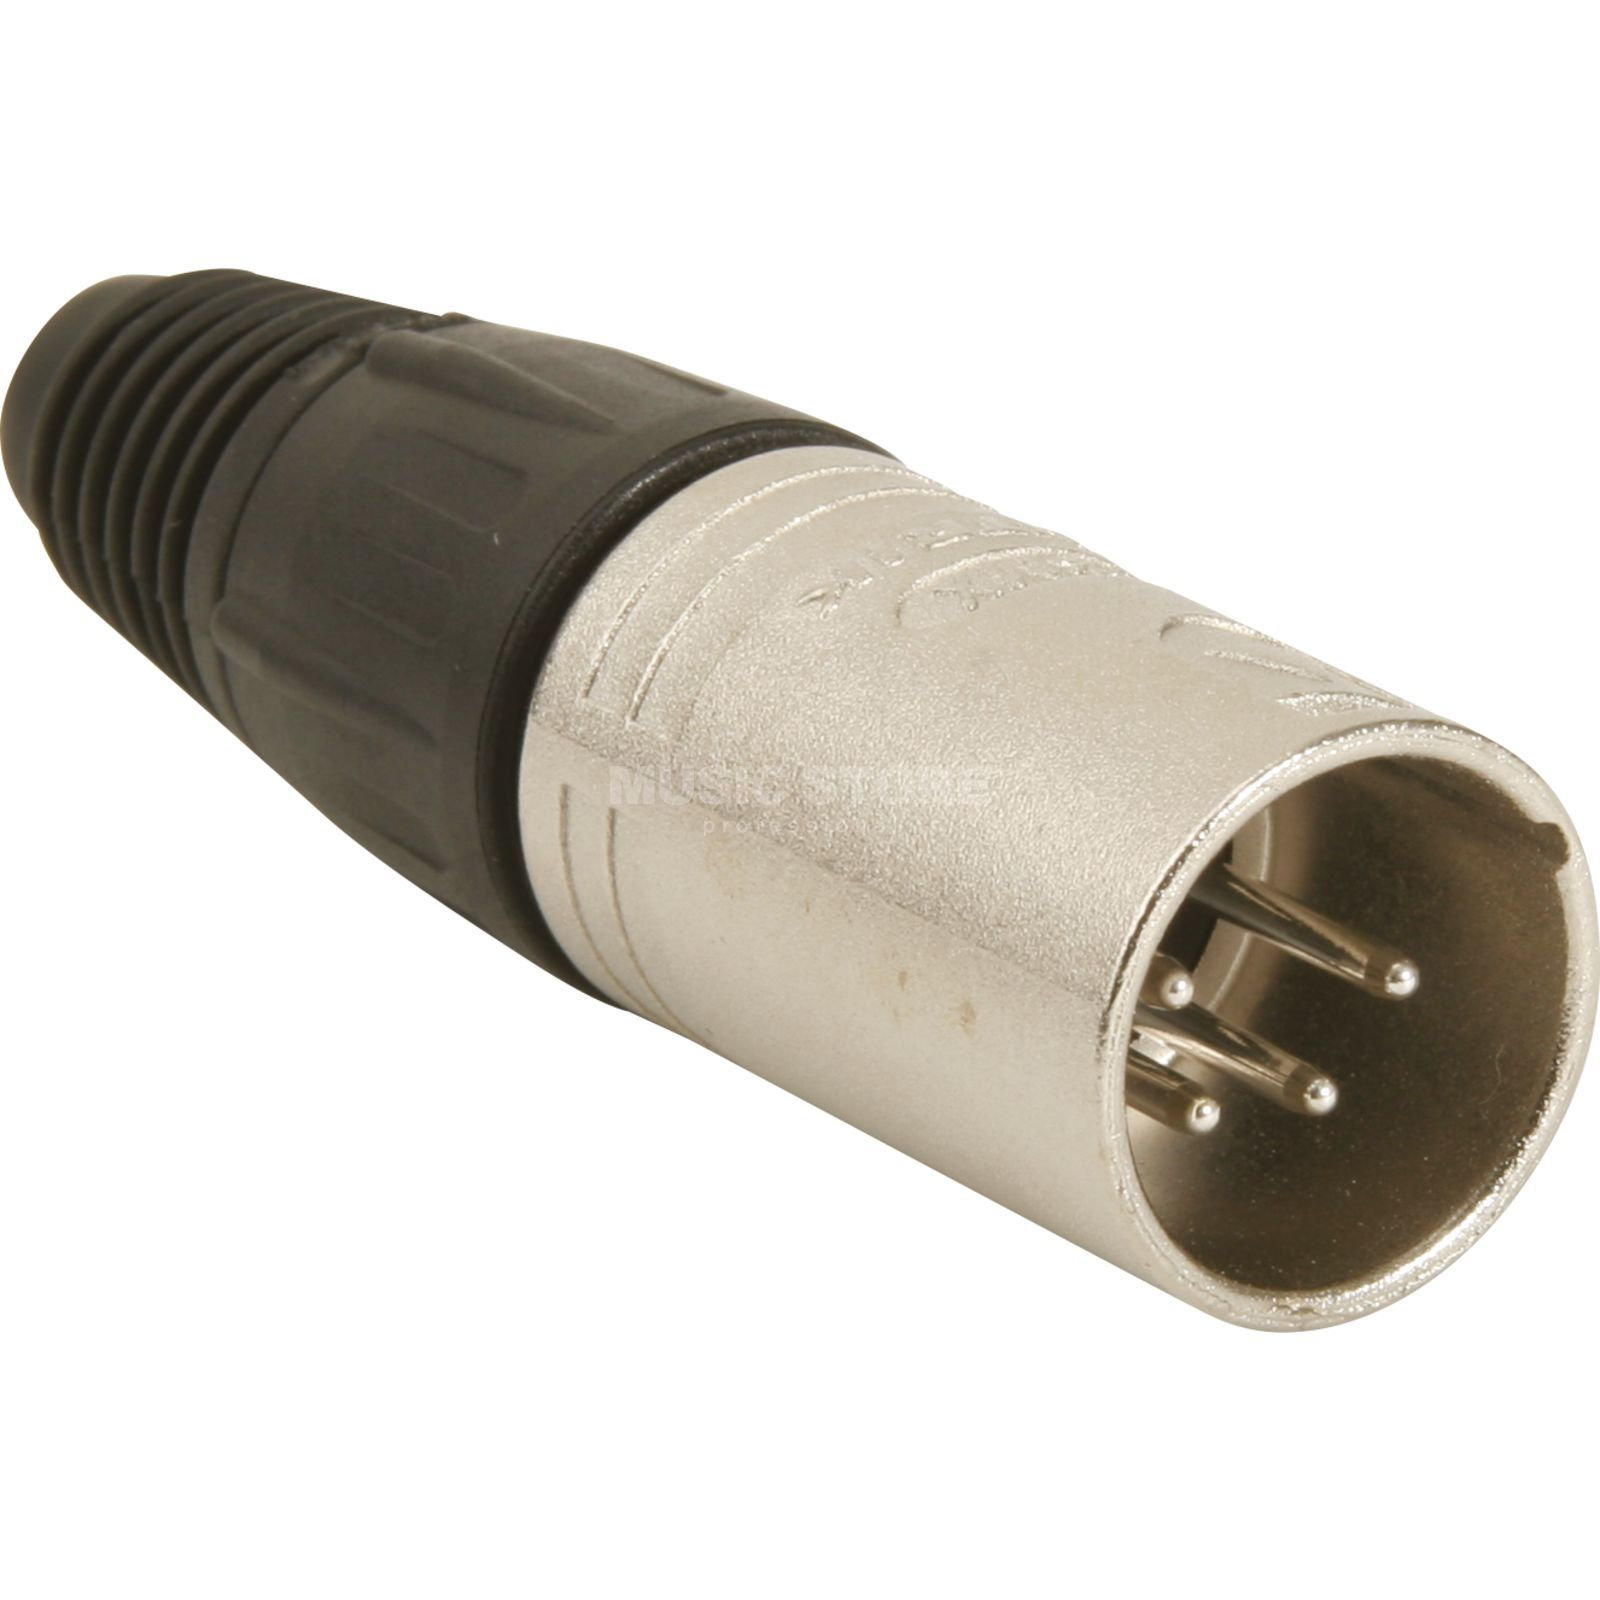 Neutrik NC4MX Cable Connector male, 4-pole Produktbillede